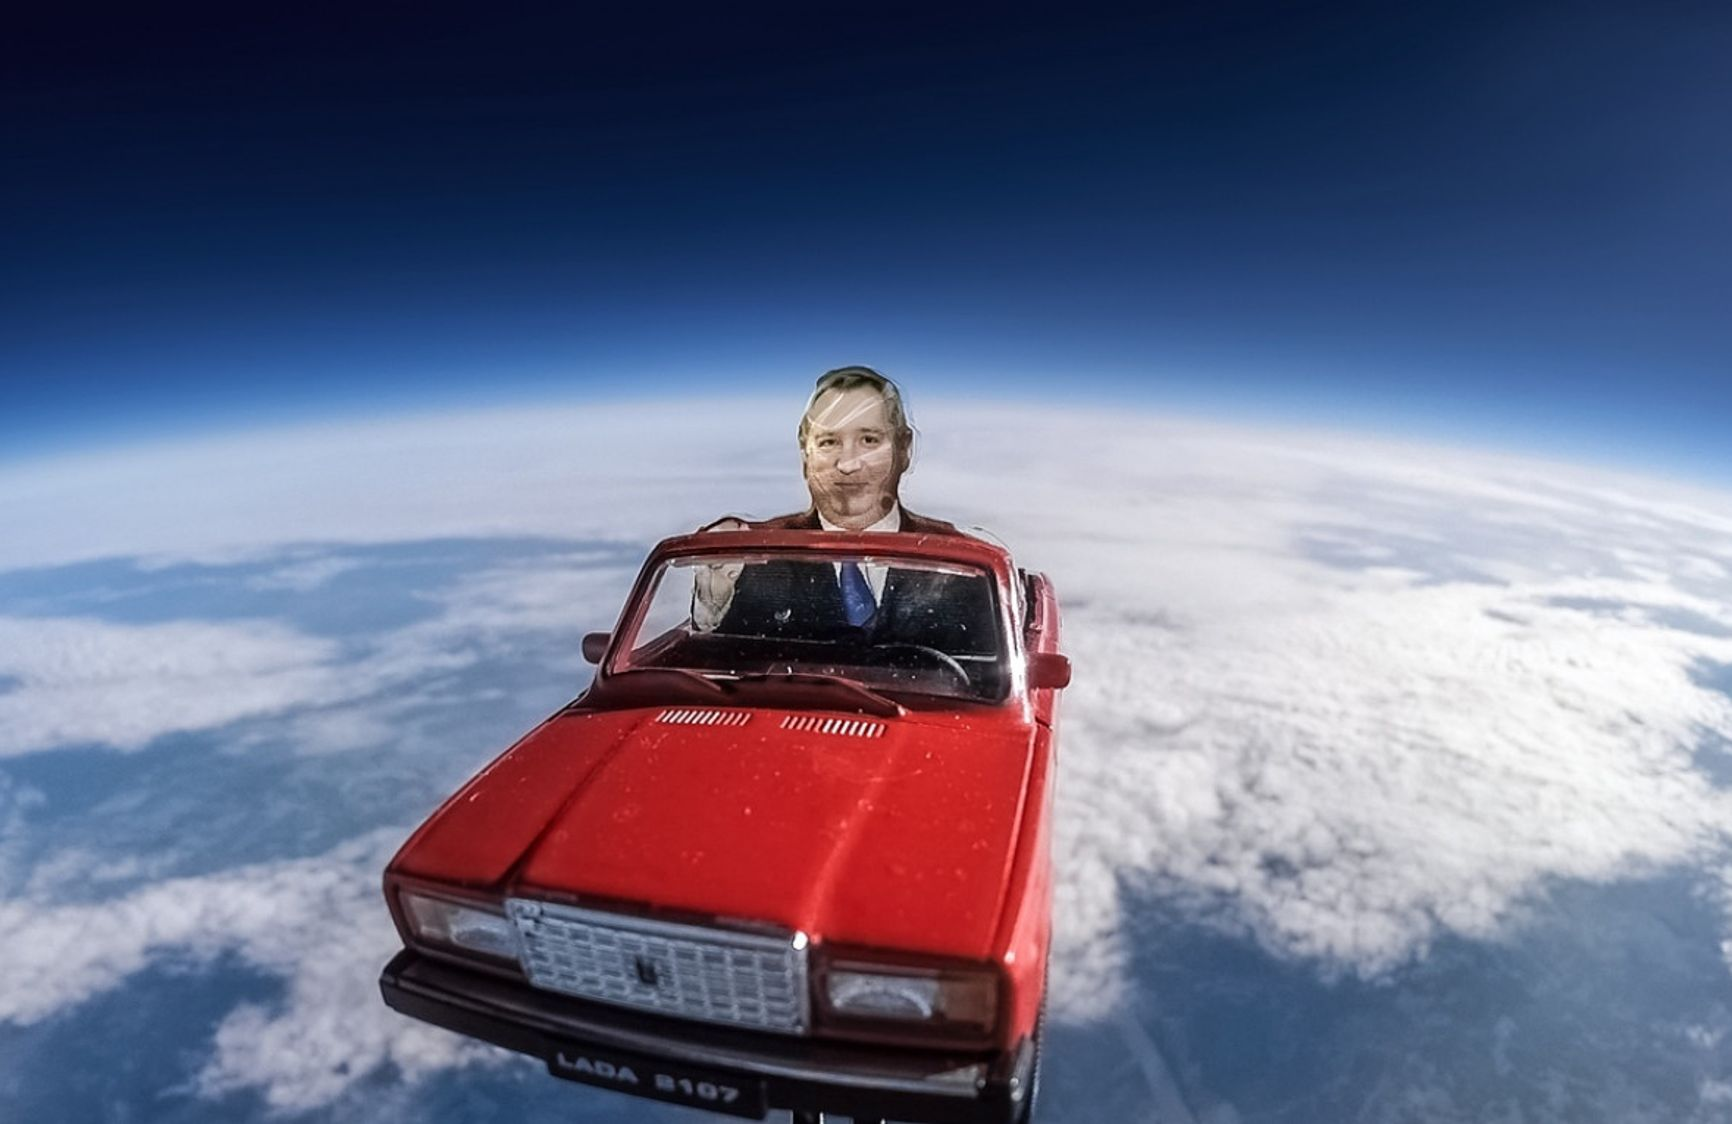 In 2019 Russian scientists sent Dmitry Rogozin's eerie effigy into the atmosphere behind the wheel of a bright red Zhiguli toy car